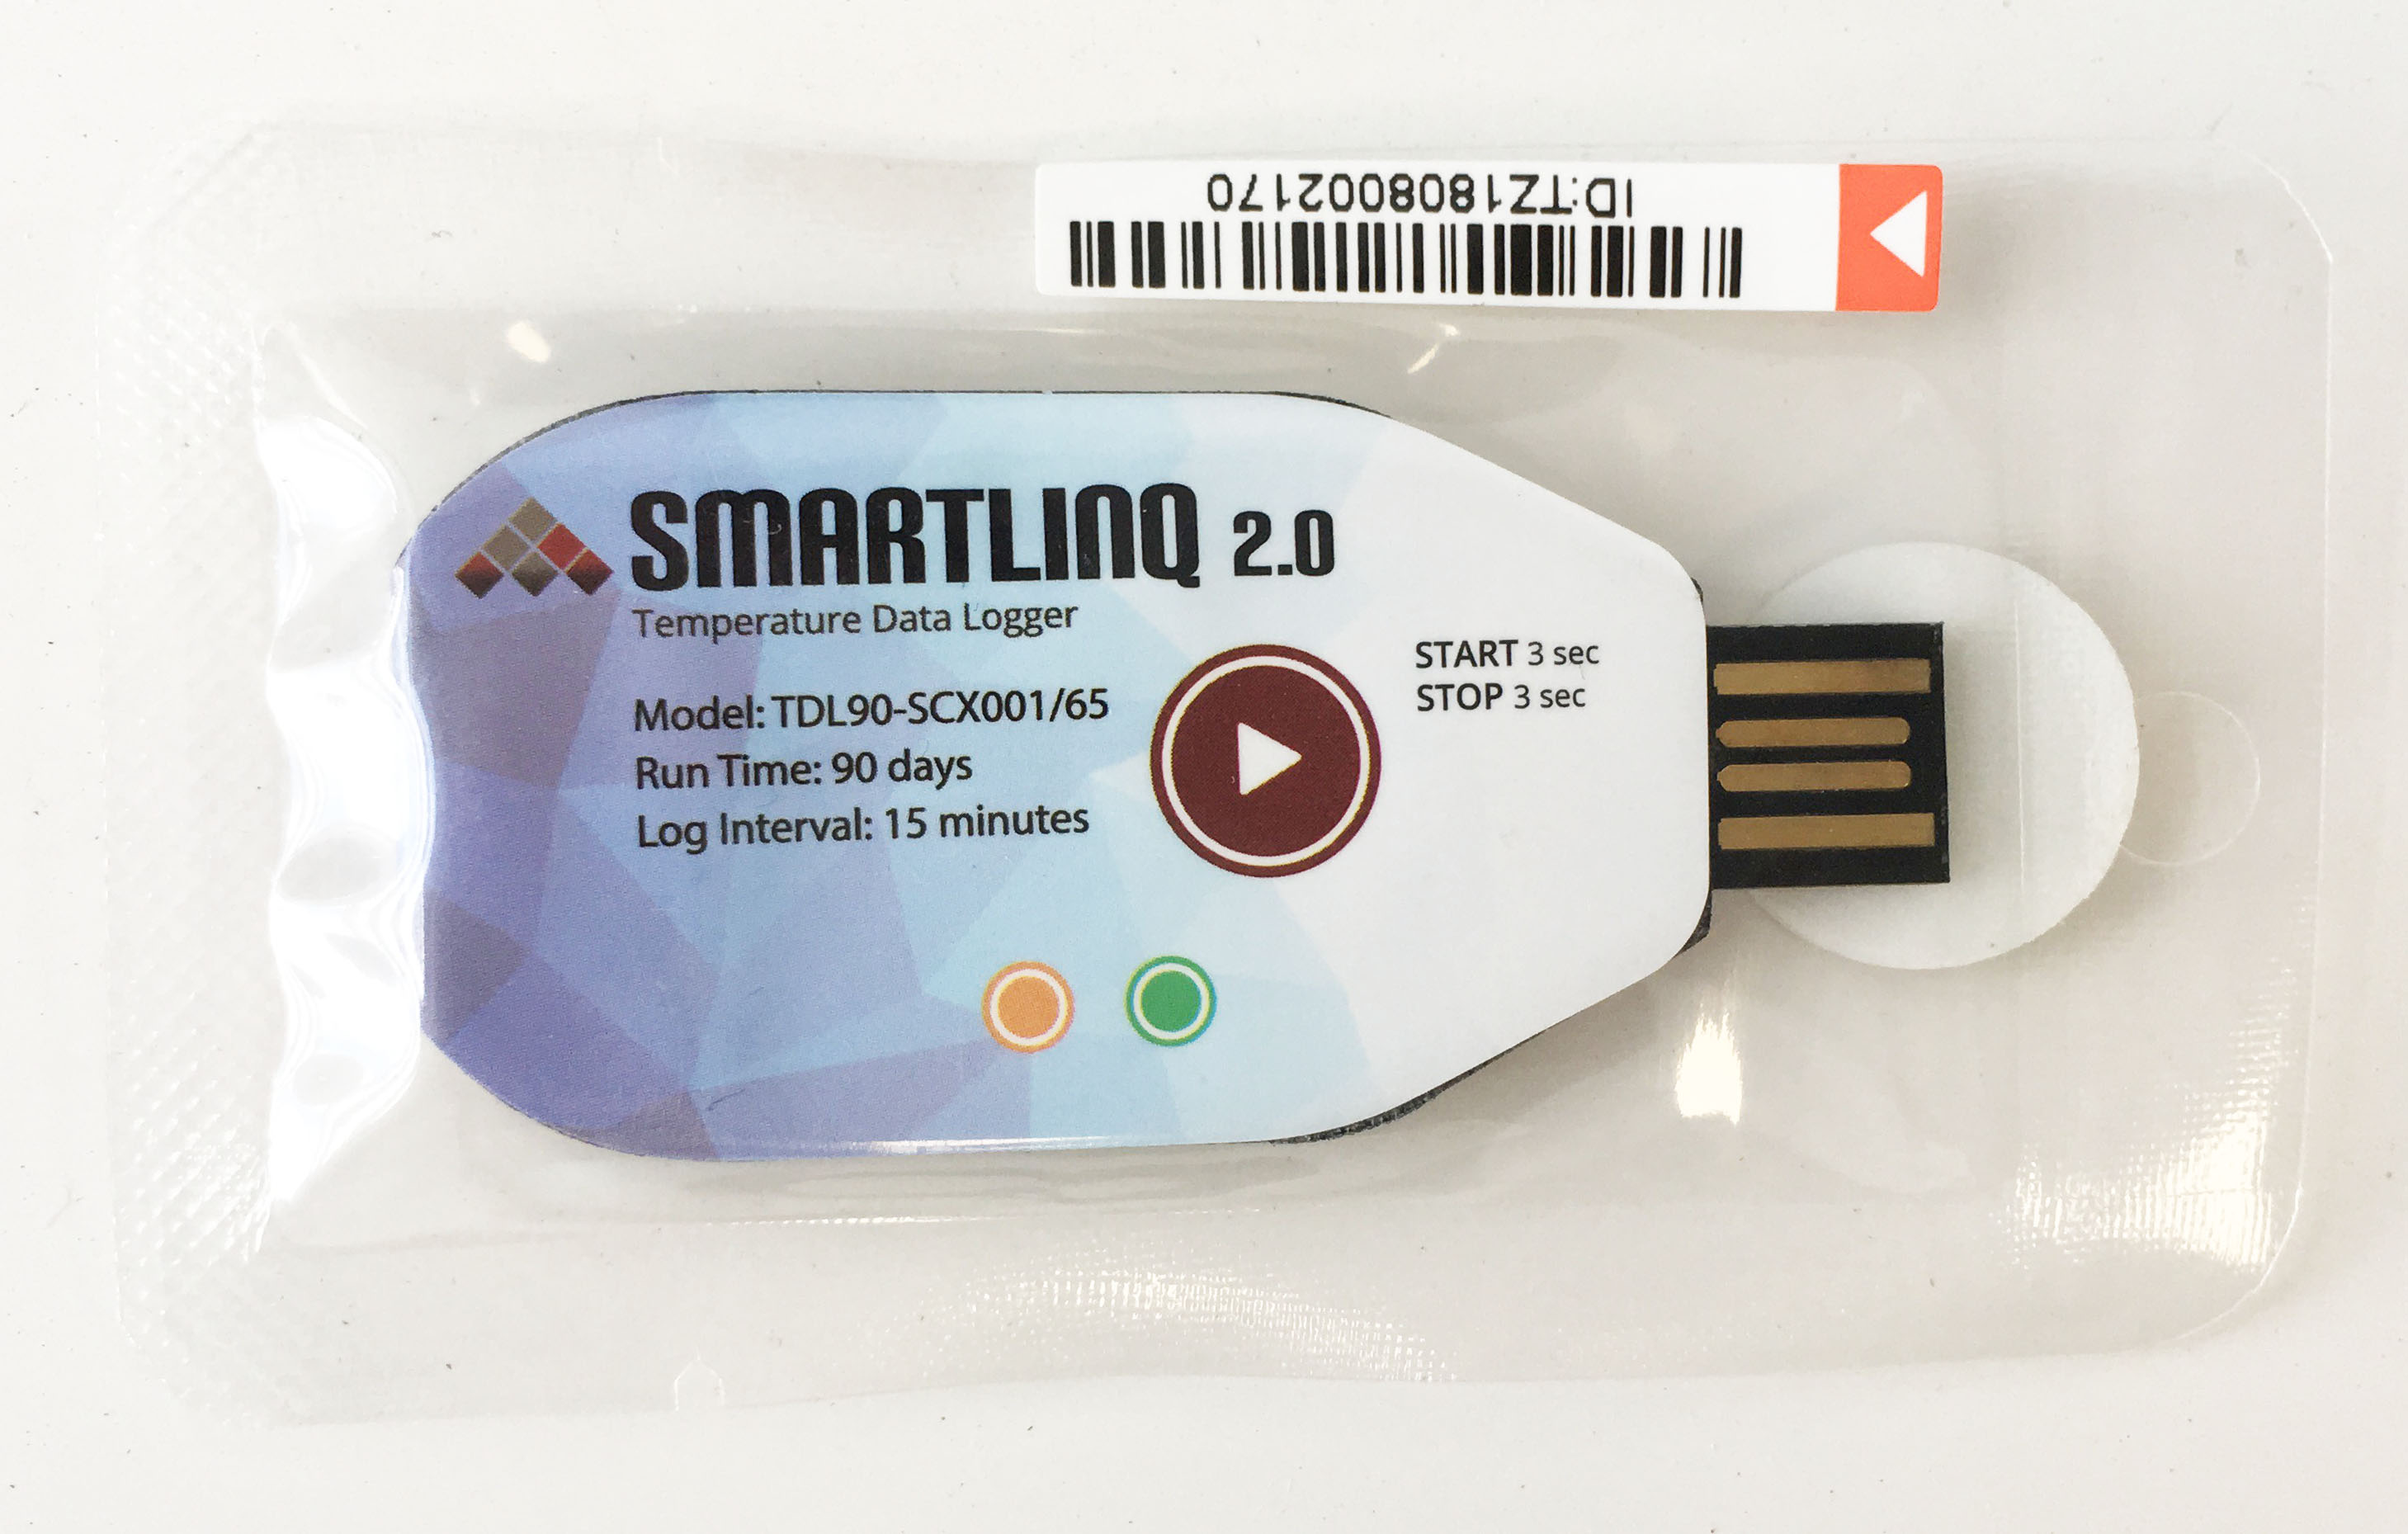 Smartlinq v2.0 Single-Use 90 Day USB Temperature Data Loggers